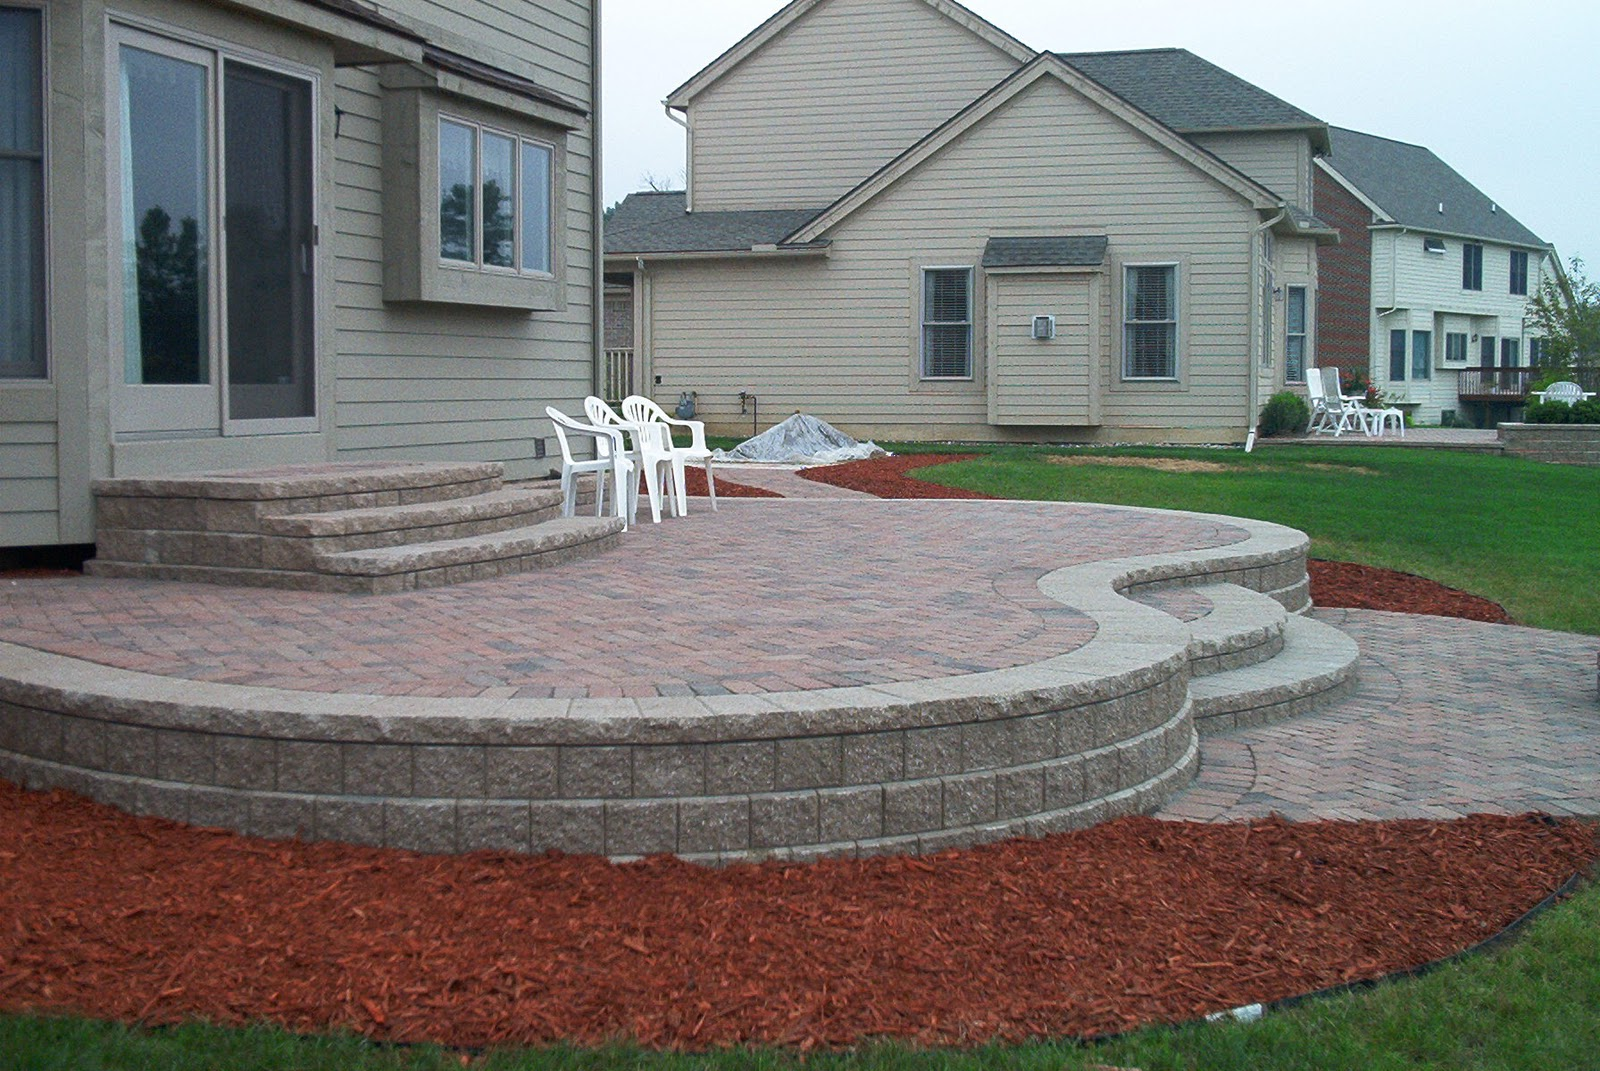 Argee Patio Pal Brick Laying Guides, Covers approx. 20 Brick paver patio designs photos